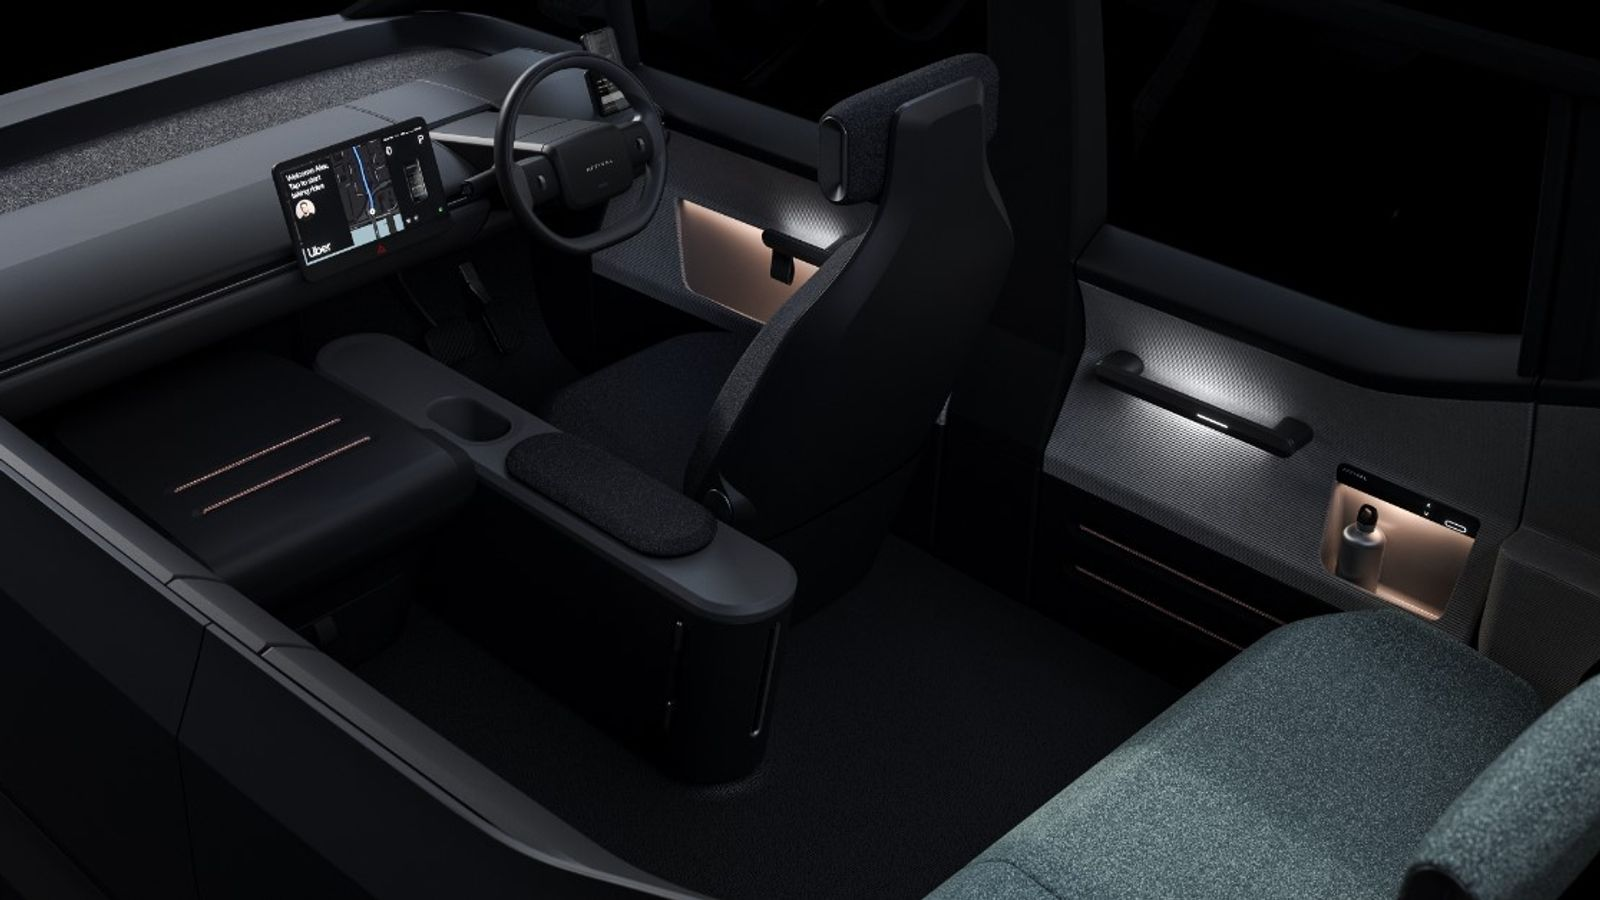 The companies said the car would offer comfort to both driver and riders. Pic: Uber/Arrival